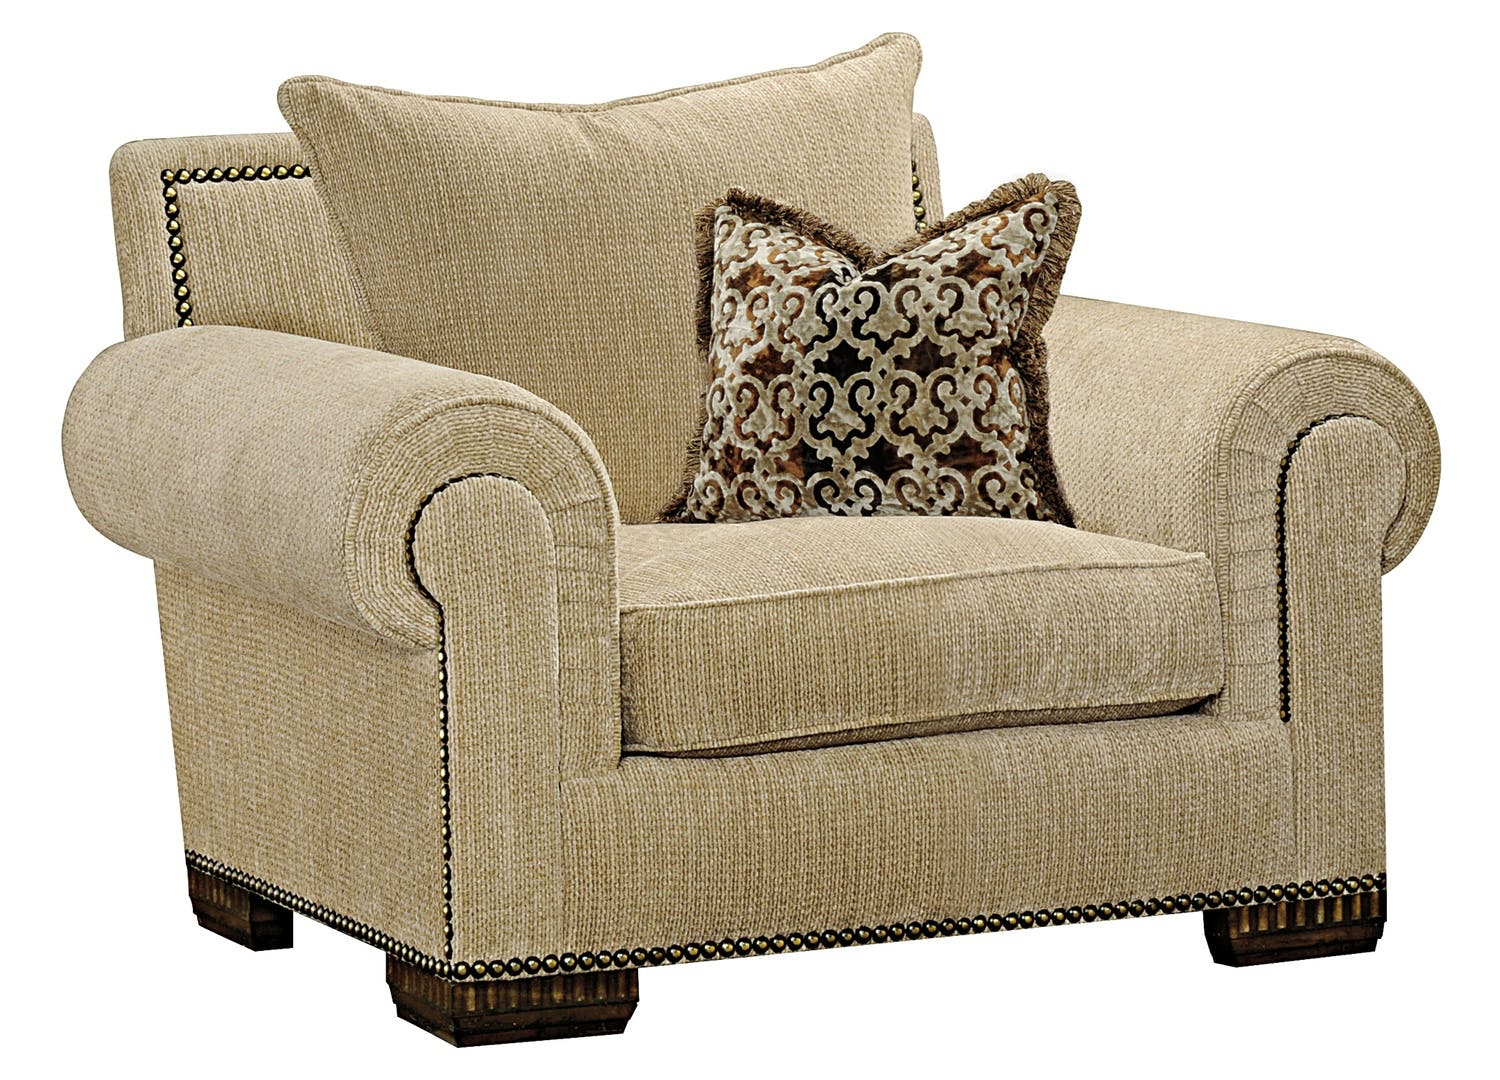 Marge Carson Living Room Bentley Lounge Chair By41l Von